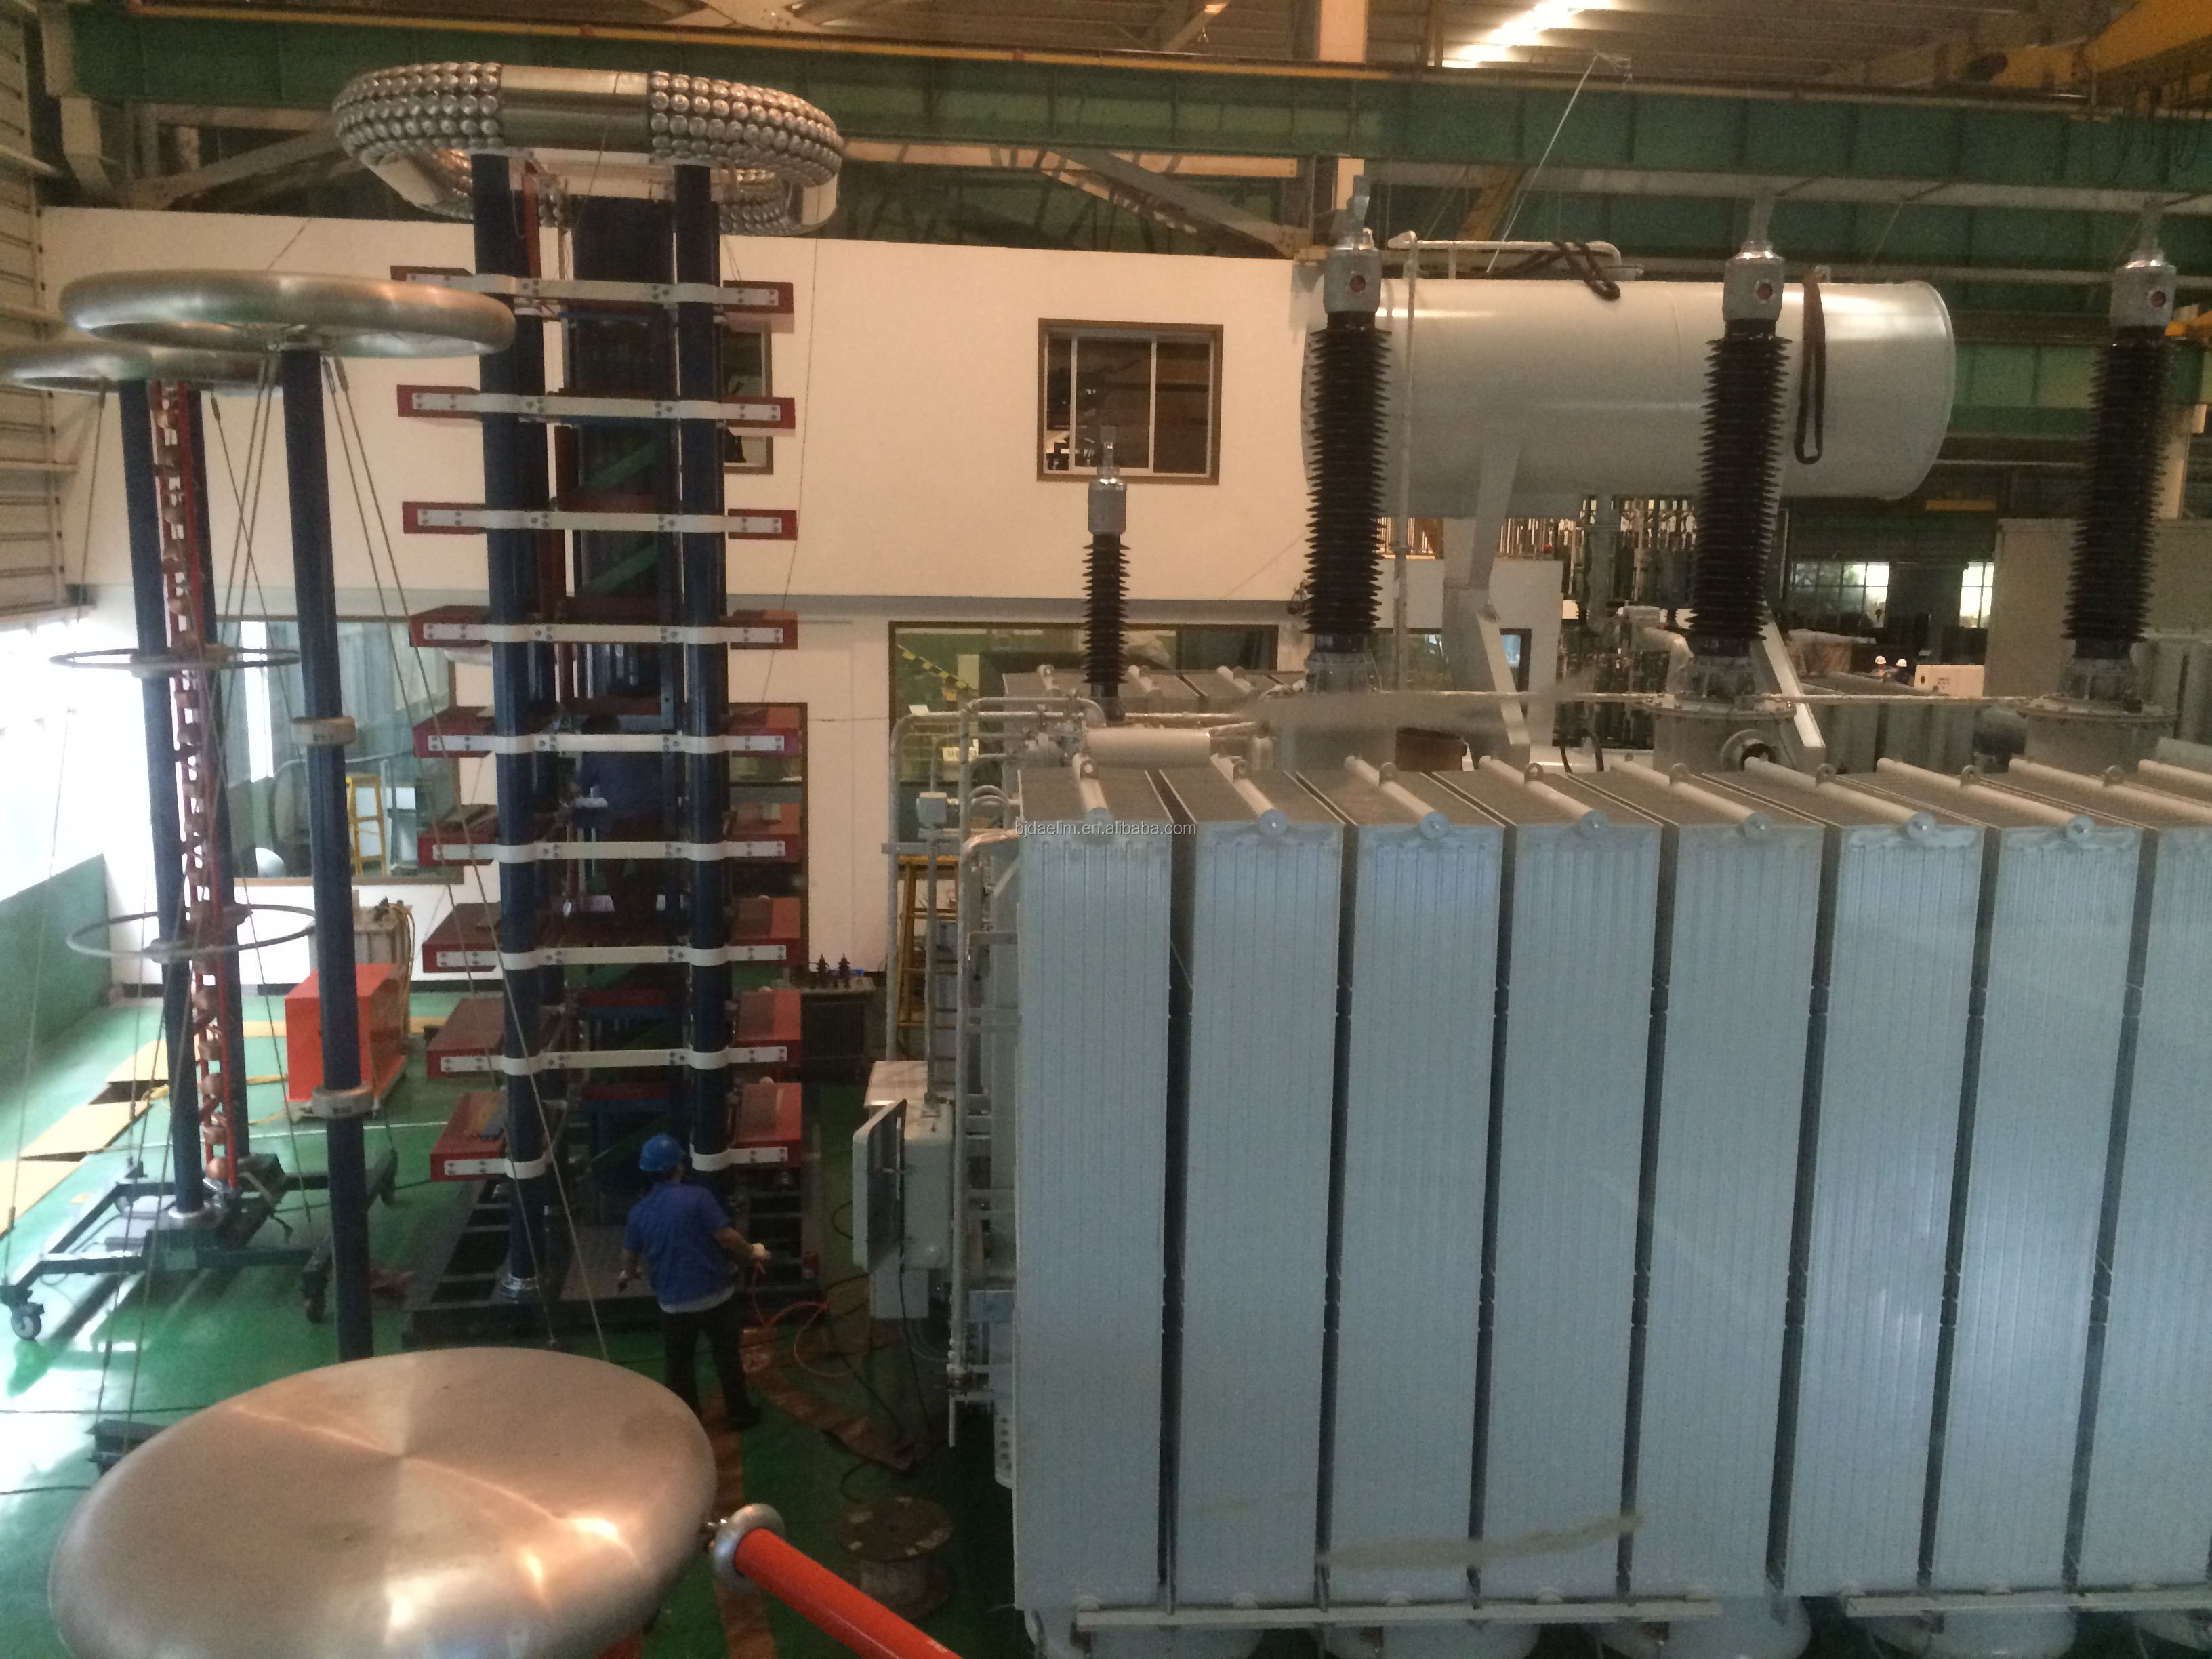 price of 110kv 12500kva  3 phase setp down  power transformer